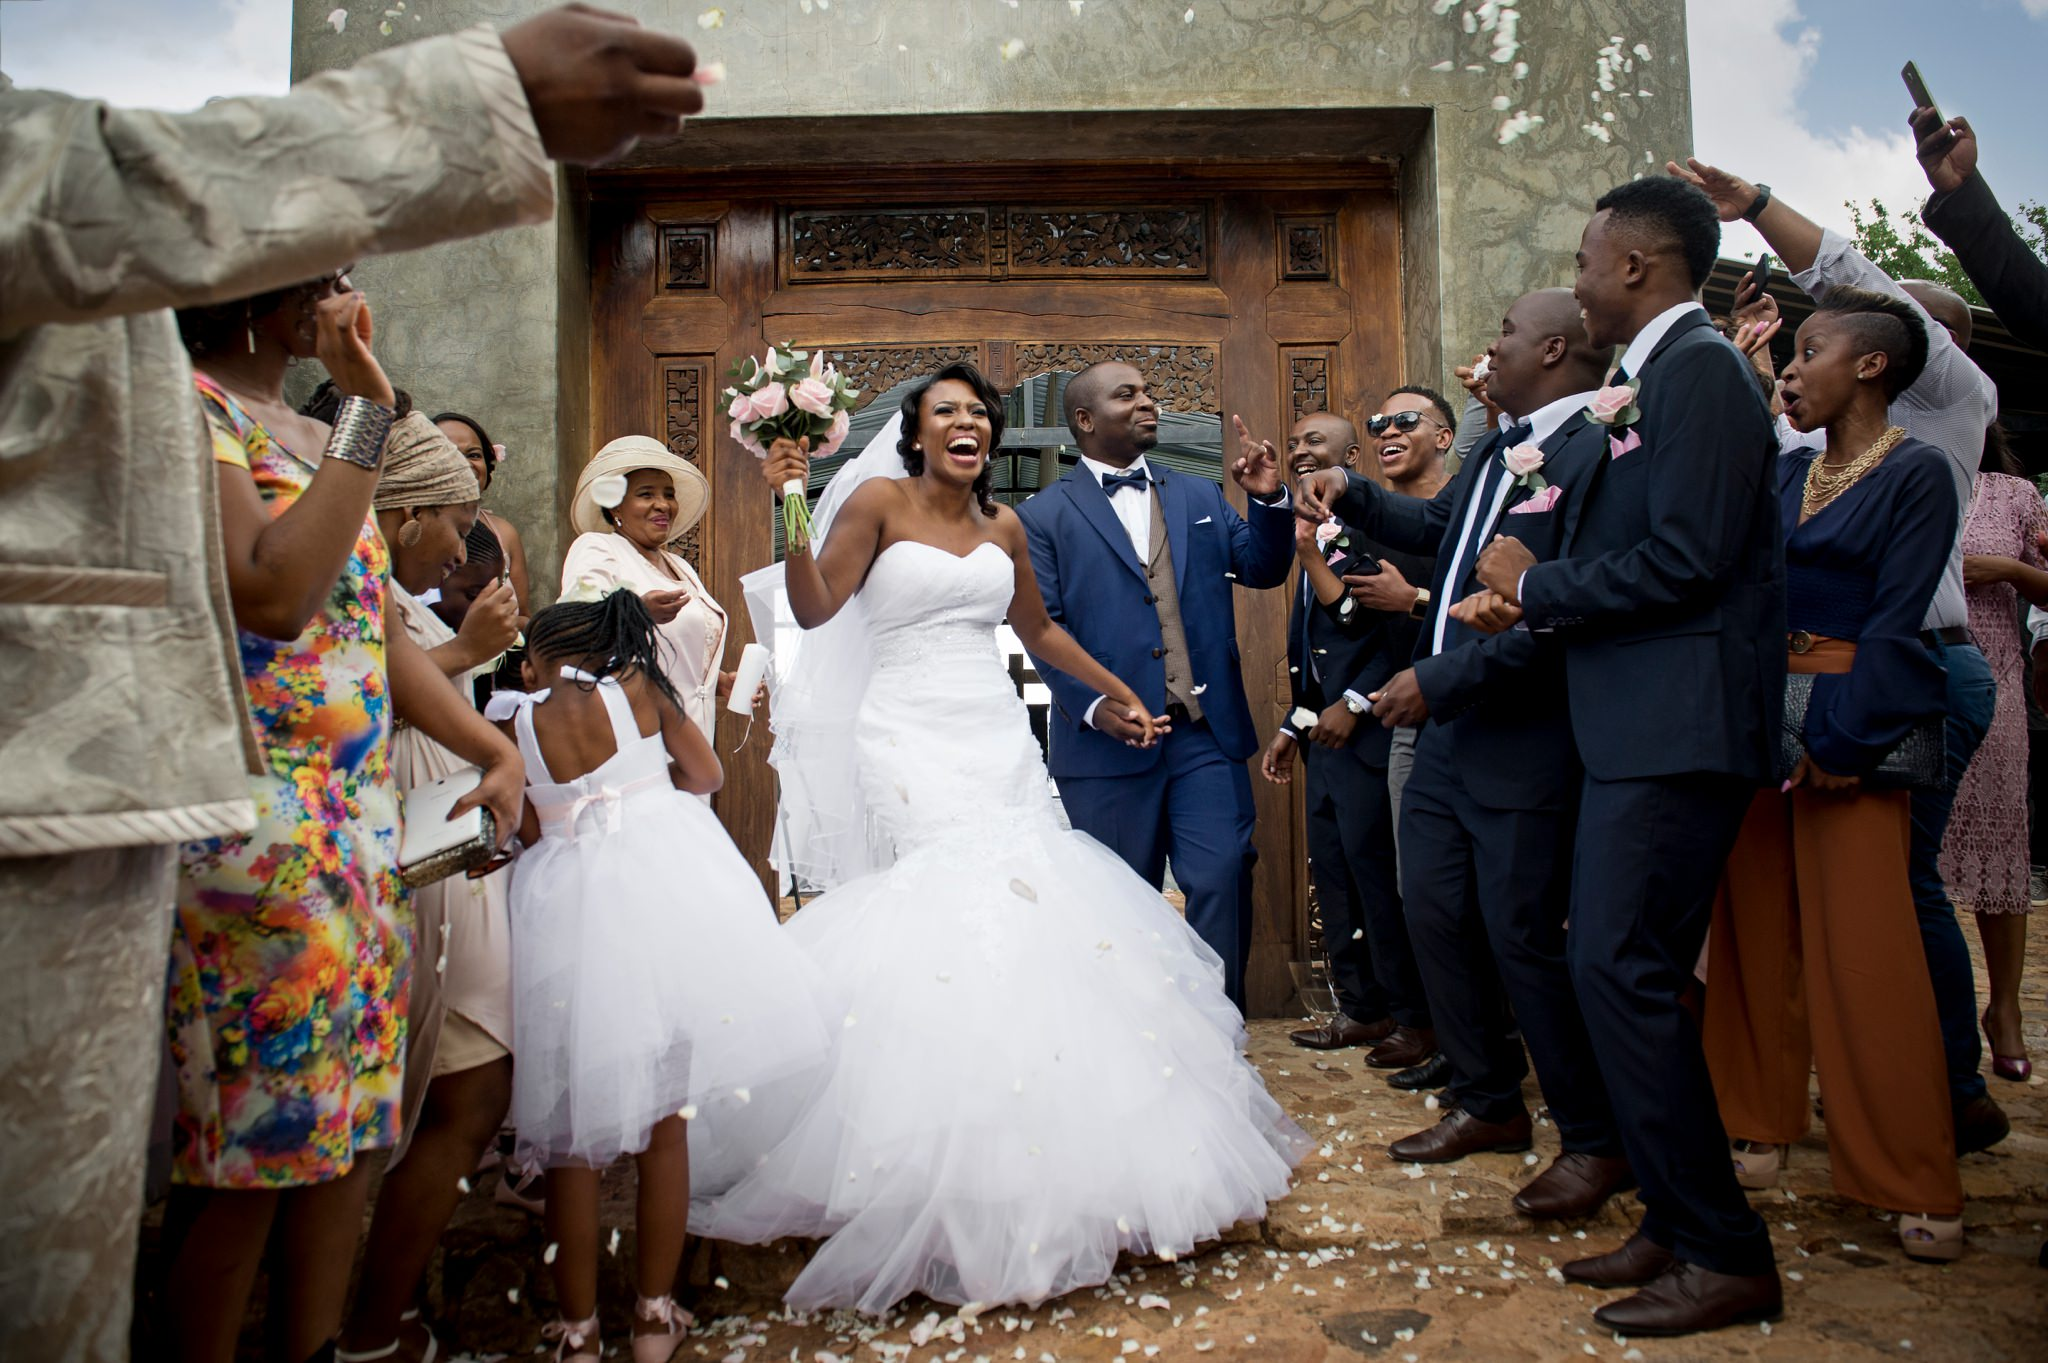 Testimonials-Top-South-African-Wedding-Photographer-Jacki-Bruniquel-012-9272